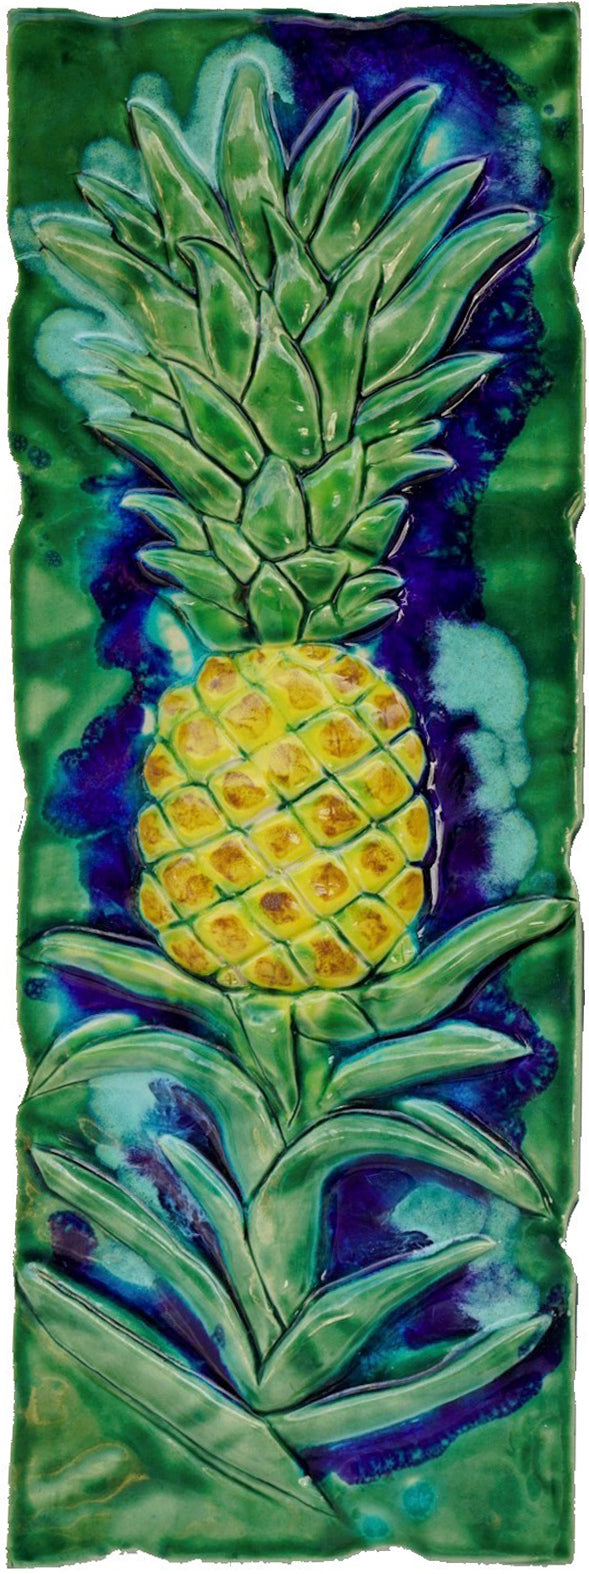 "Ceramic Pineapple Design Tile for Kitchen Backsplash, Bathroom Tile 8.5""x22"" $595.00 LP43"